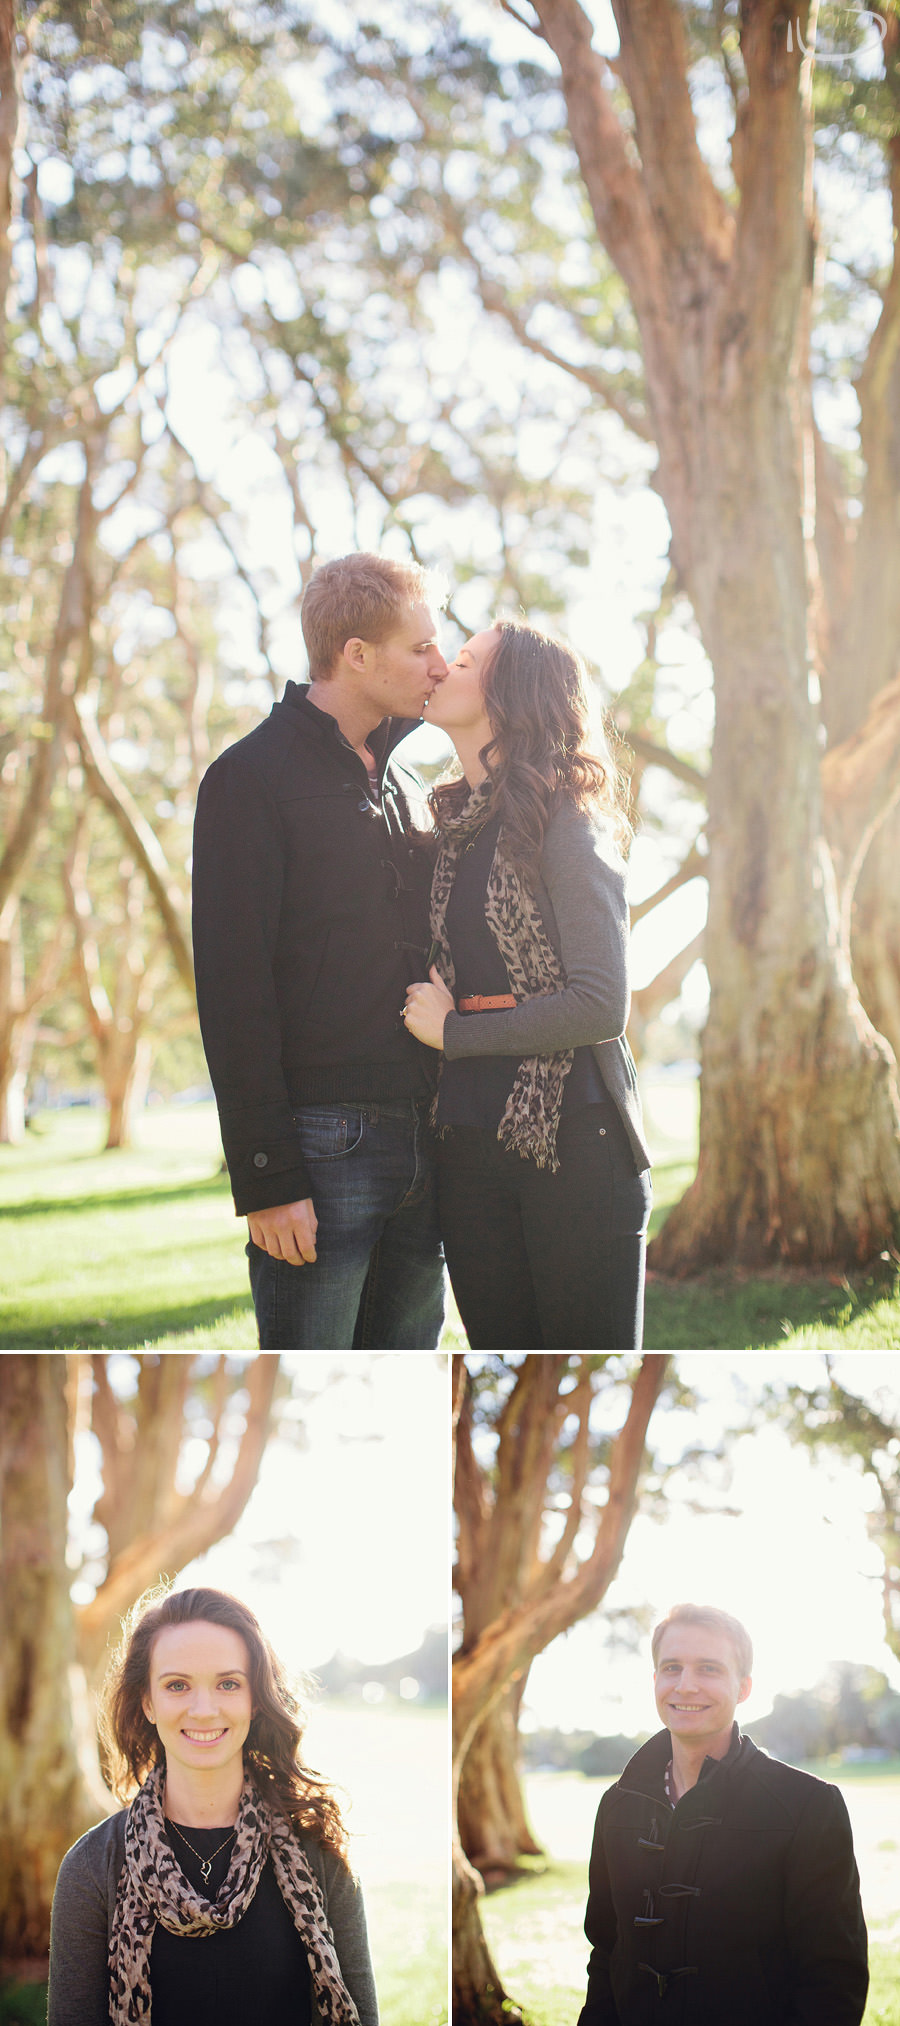 Sydney Wedding Photographers: Couple kissing in park